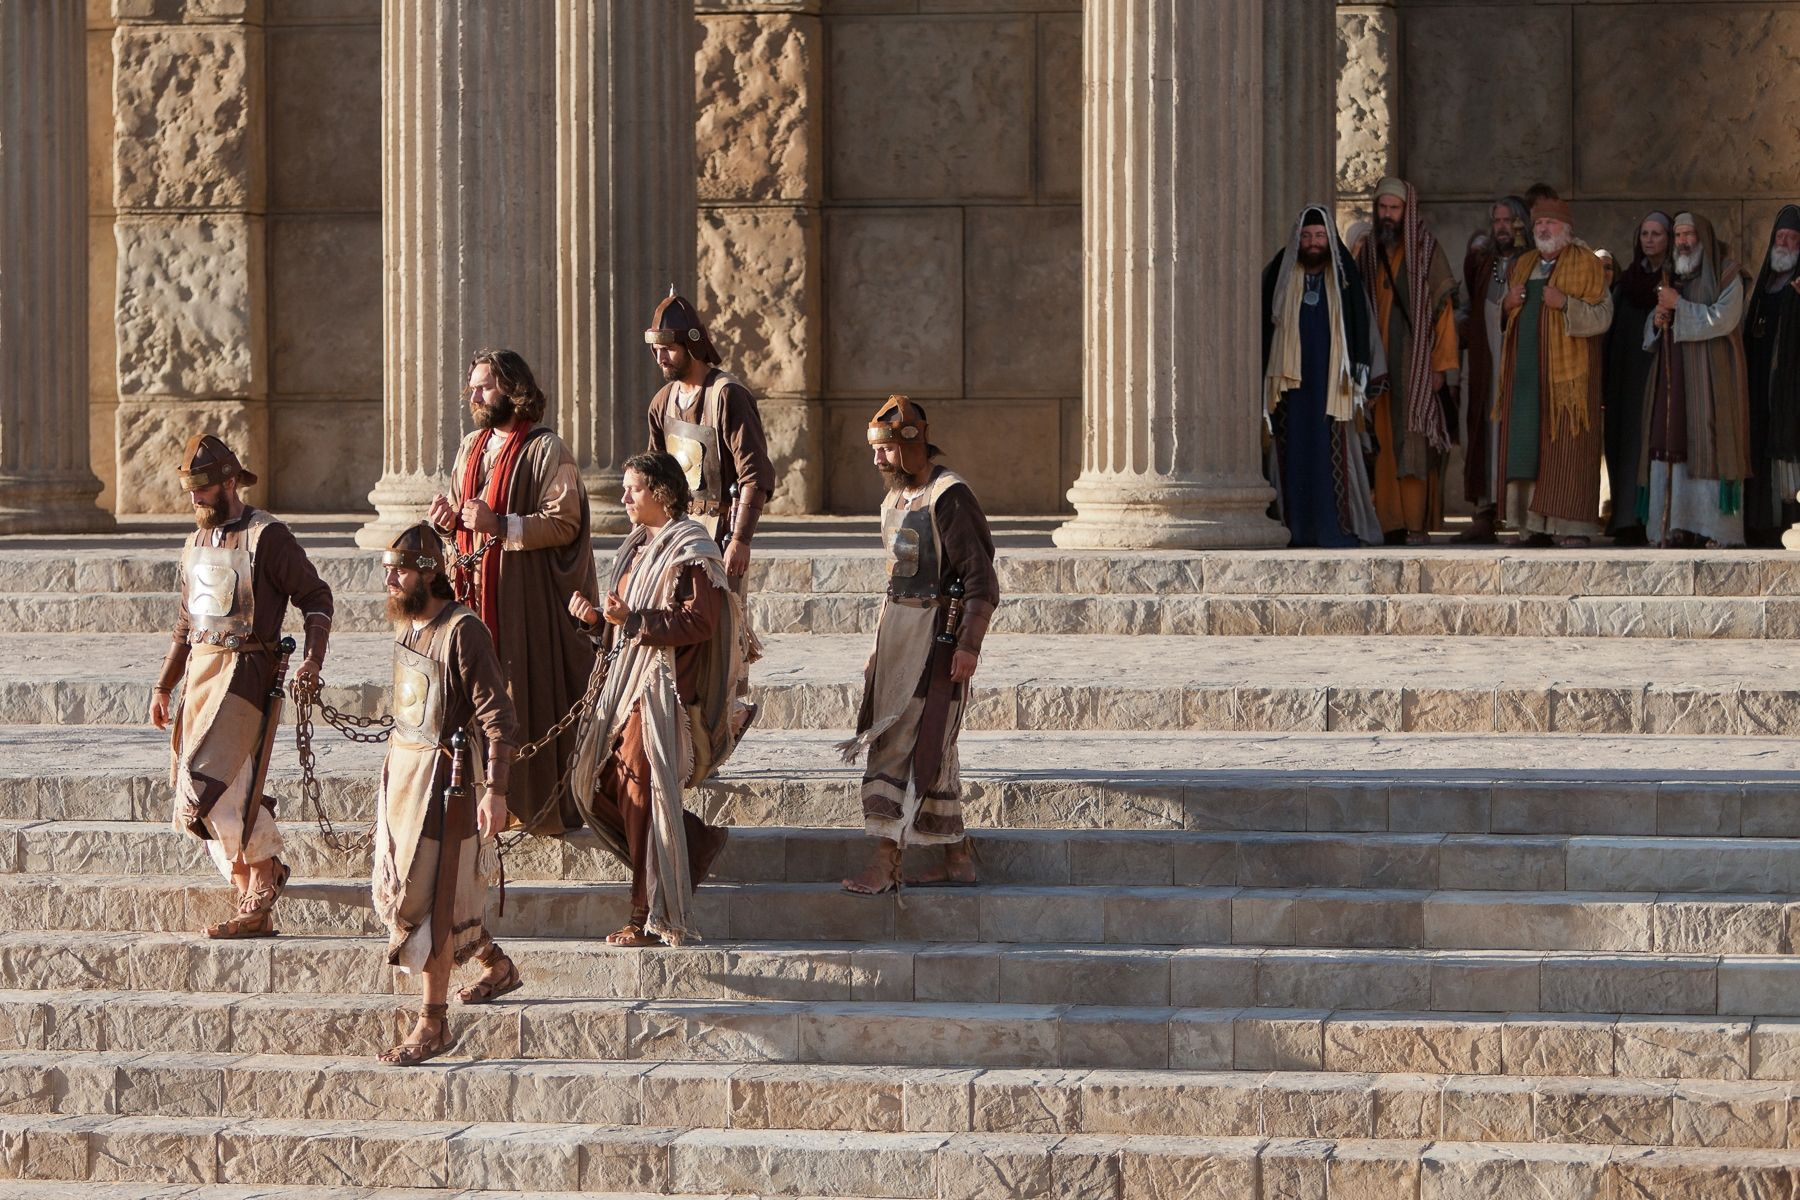 Acts 3:12–26, 4:1–3, Peter is arrested by soldiers